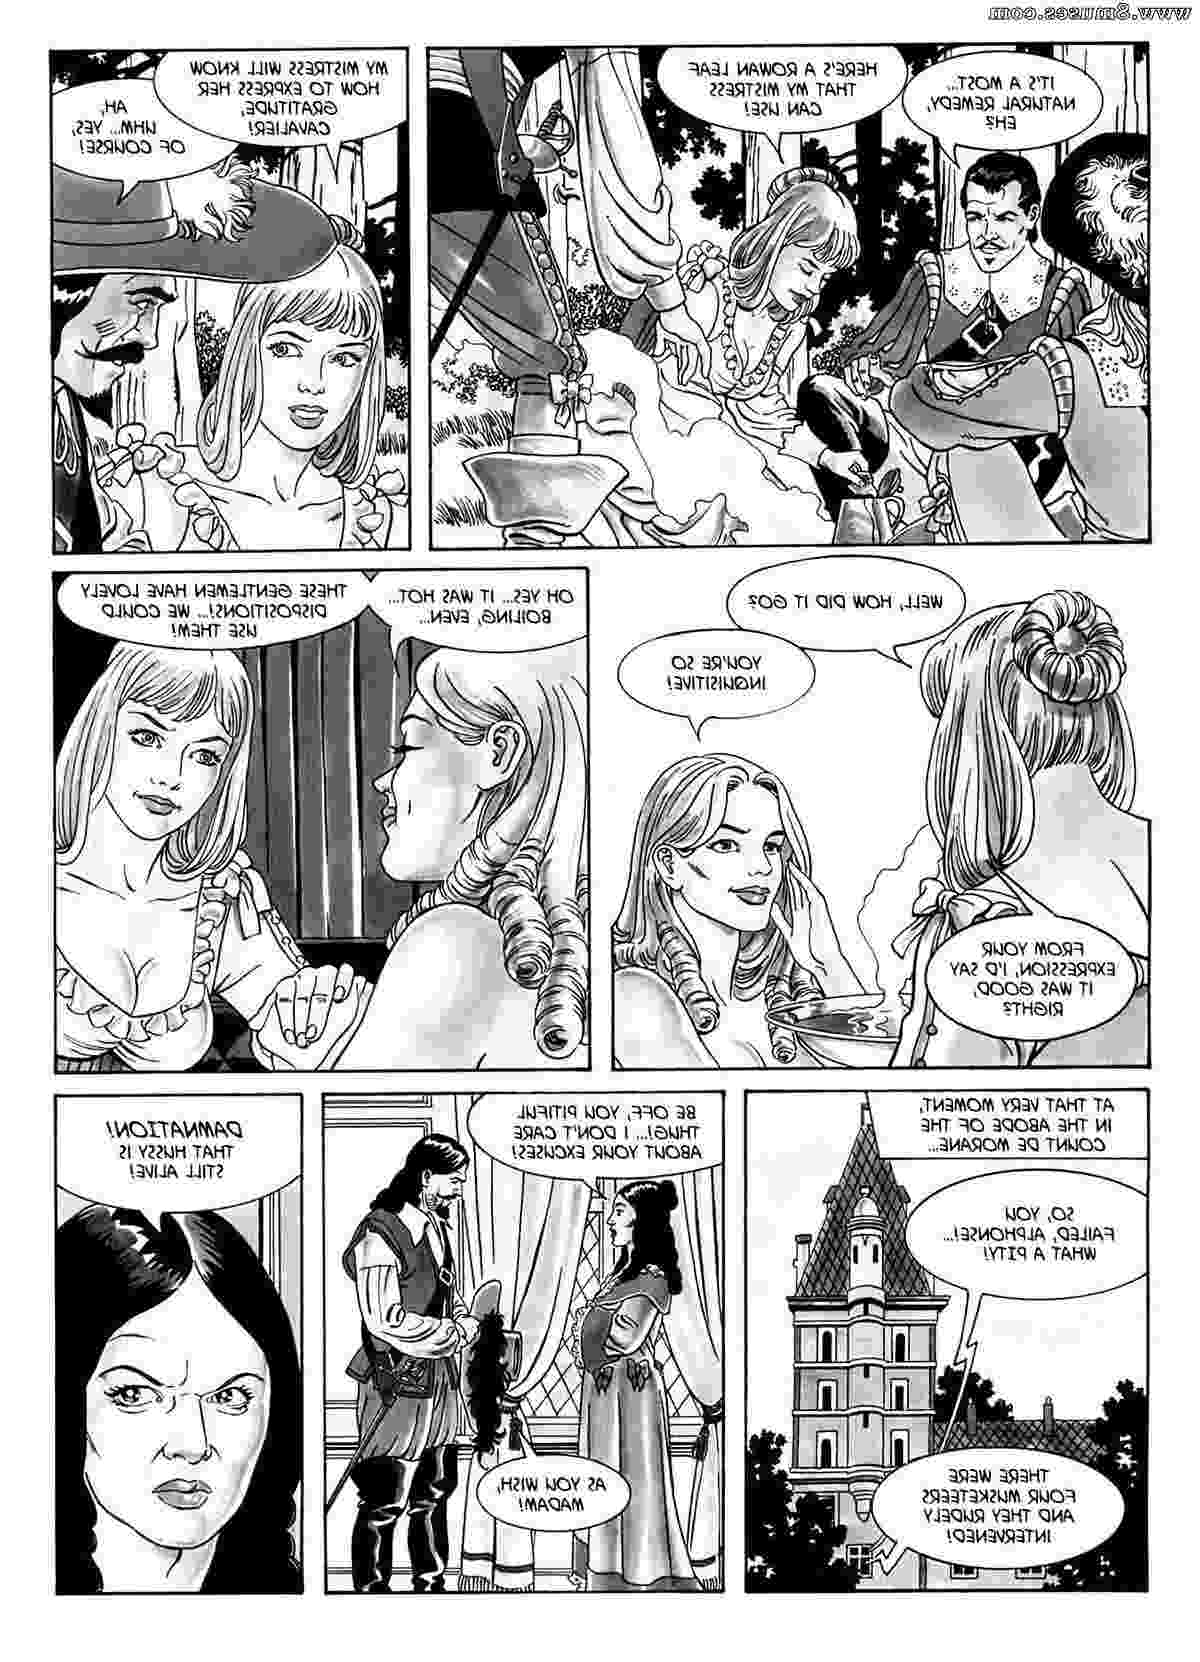 Stramaglia-Morale-Comics/Impetuous-Amber Impetuous_Amber__8muses_-_Sex_and_Porn_Comics_23.jpg